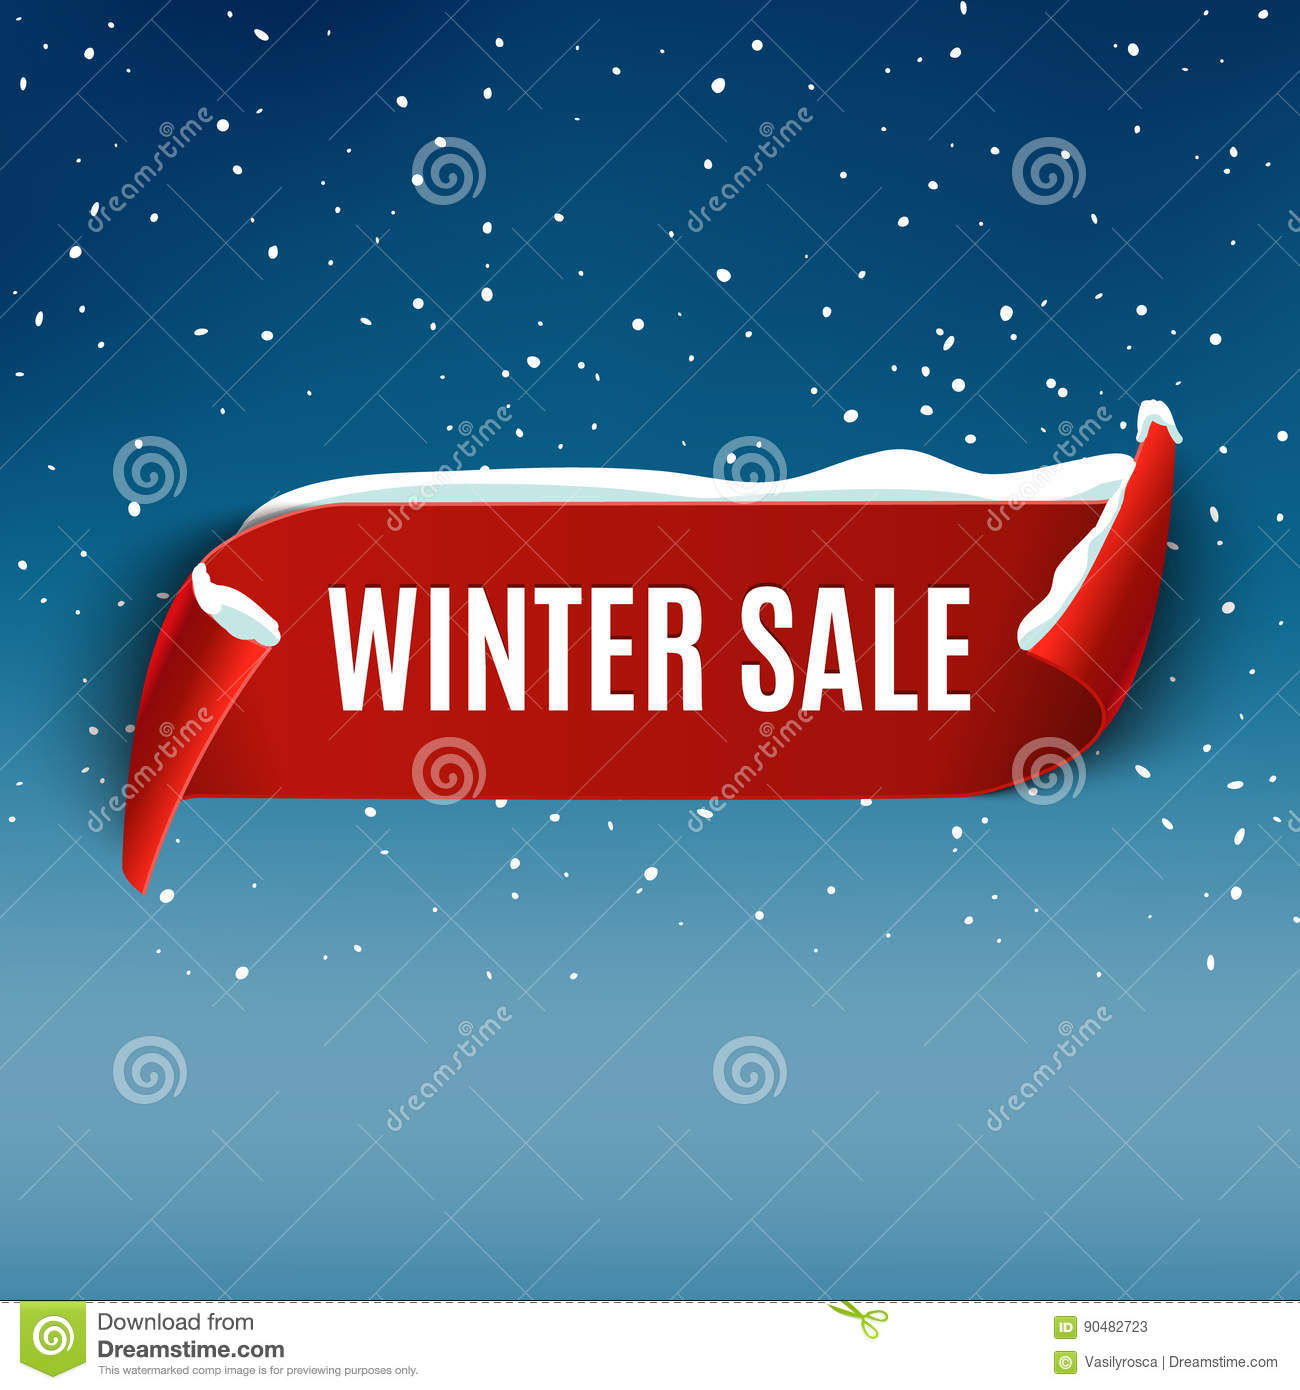 Winter sale background with red realistic ribbon. Winter poster or banner promotional design with snow. Vector discount marketing